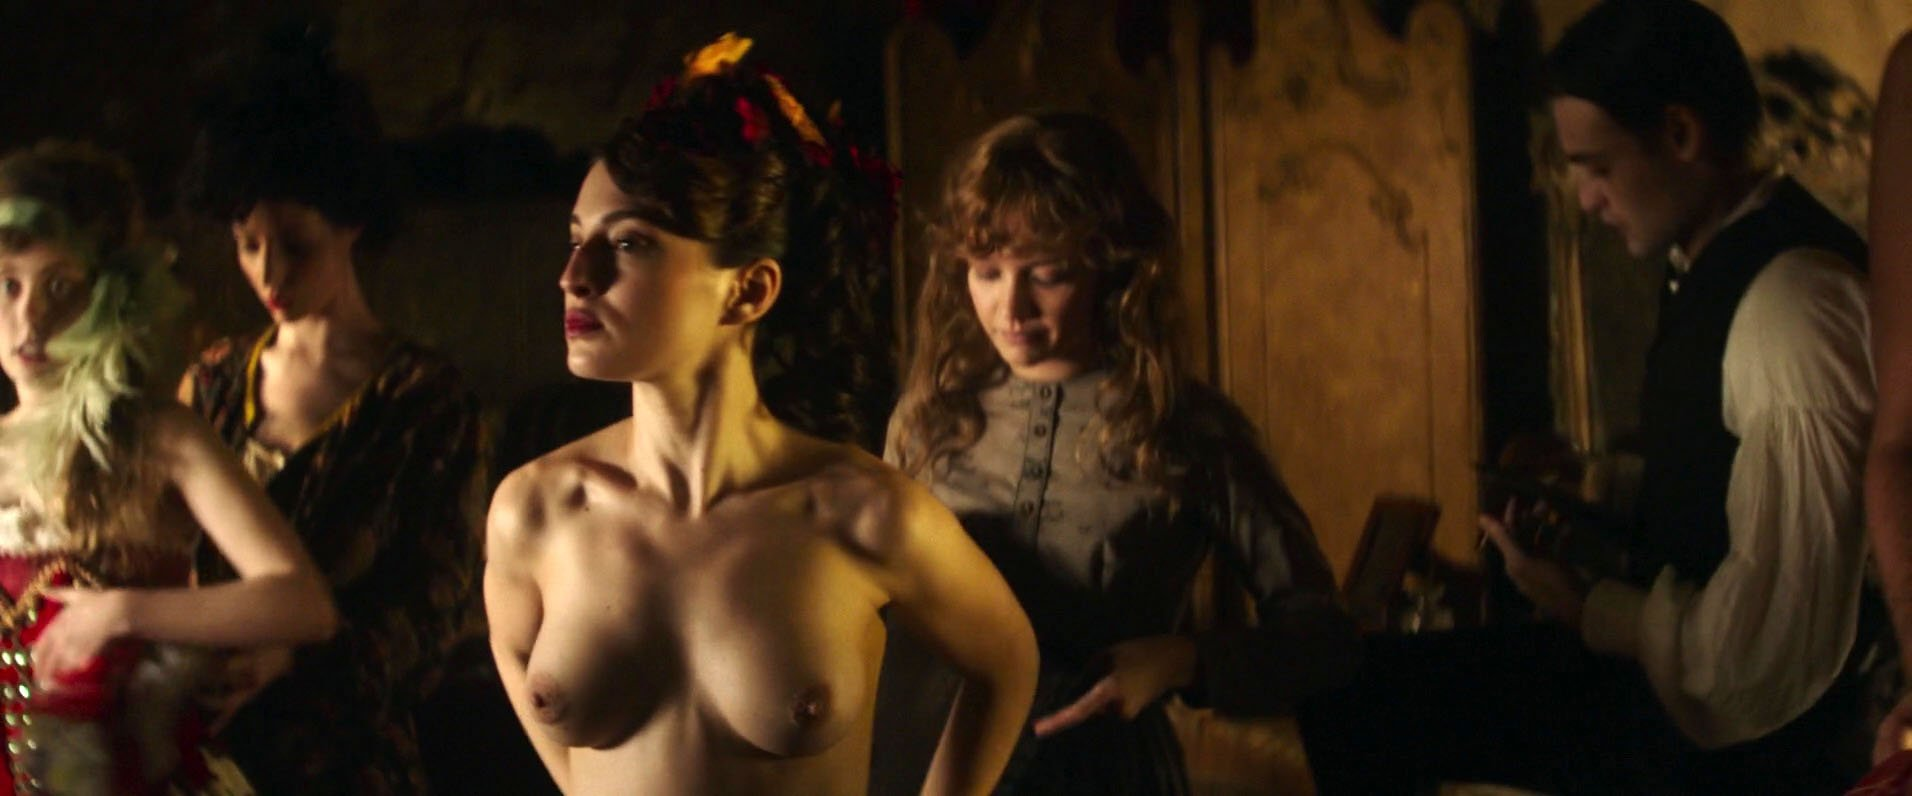 Maria Valverde nude - The Limehouse Golem (2016)